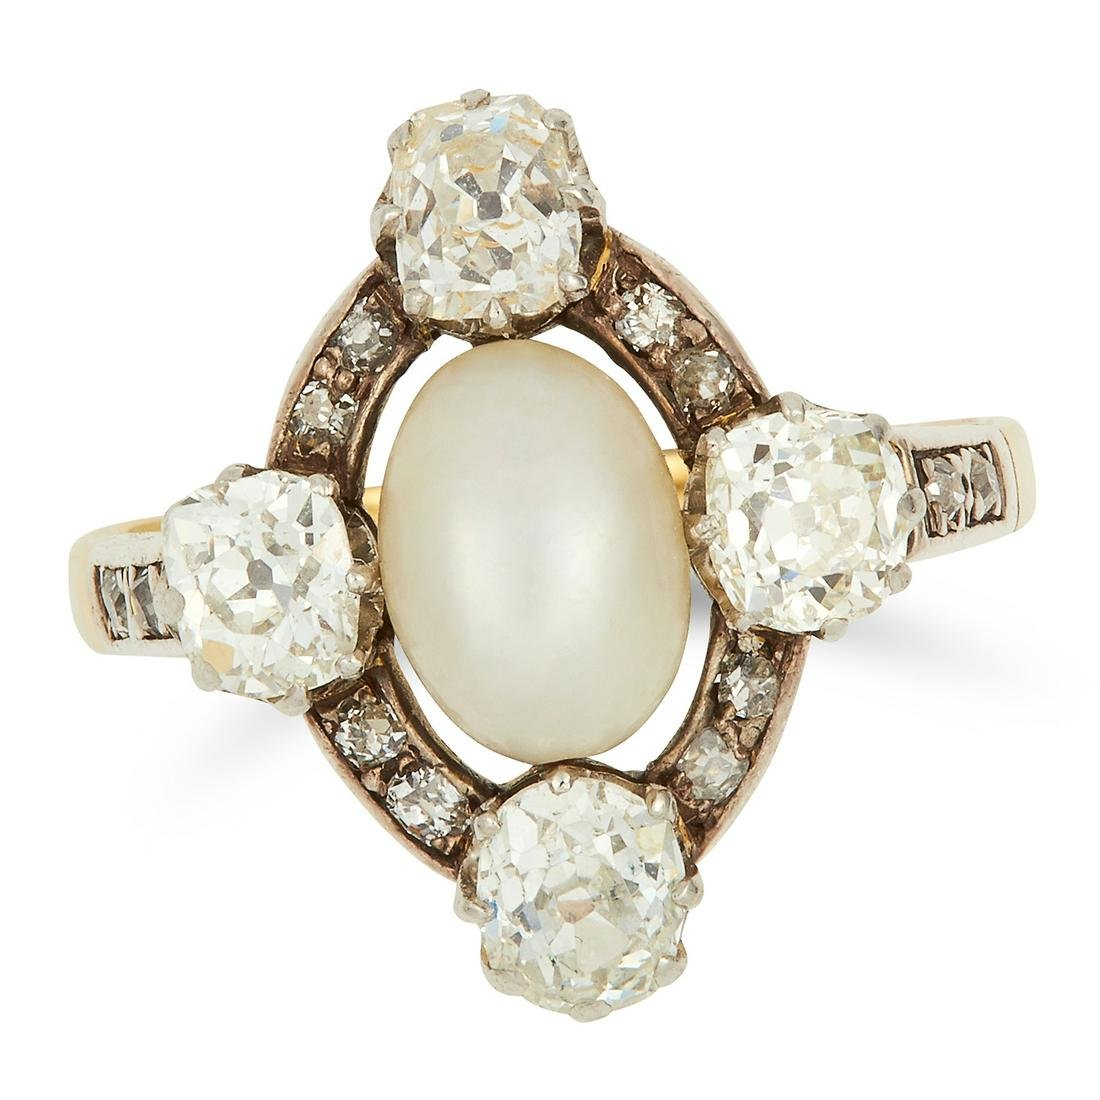 ANTIQUE NATURAL PEARL AND DIAMOND RING set with a